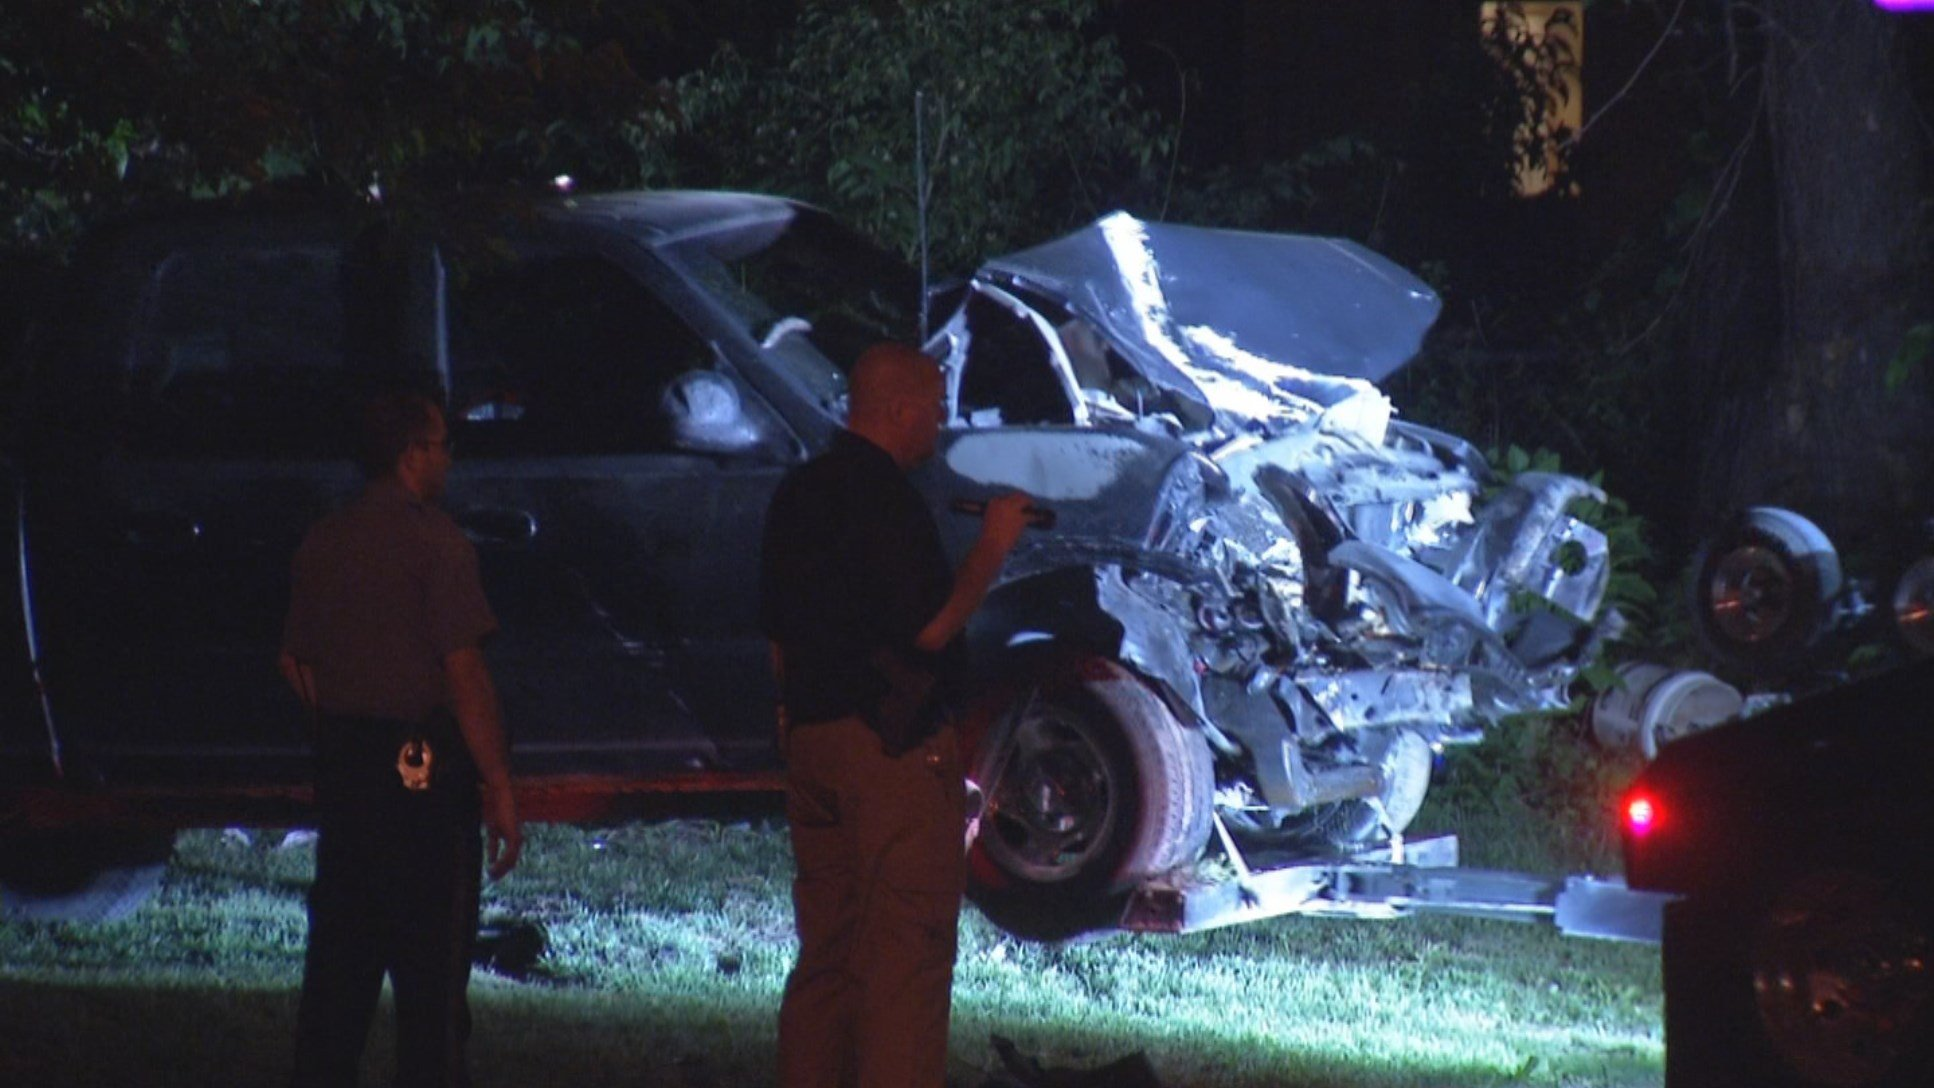 The wreck happened shortly after 10 p.m. in the 1200 block of Osage Avenue. (KCTV5)